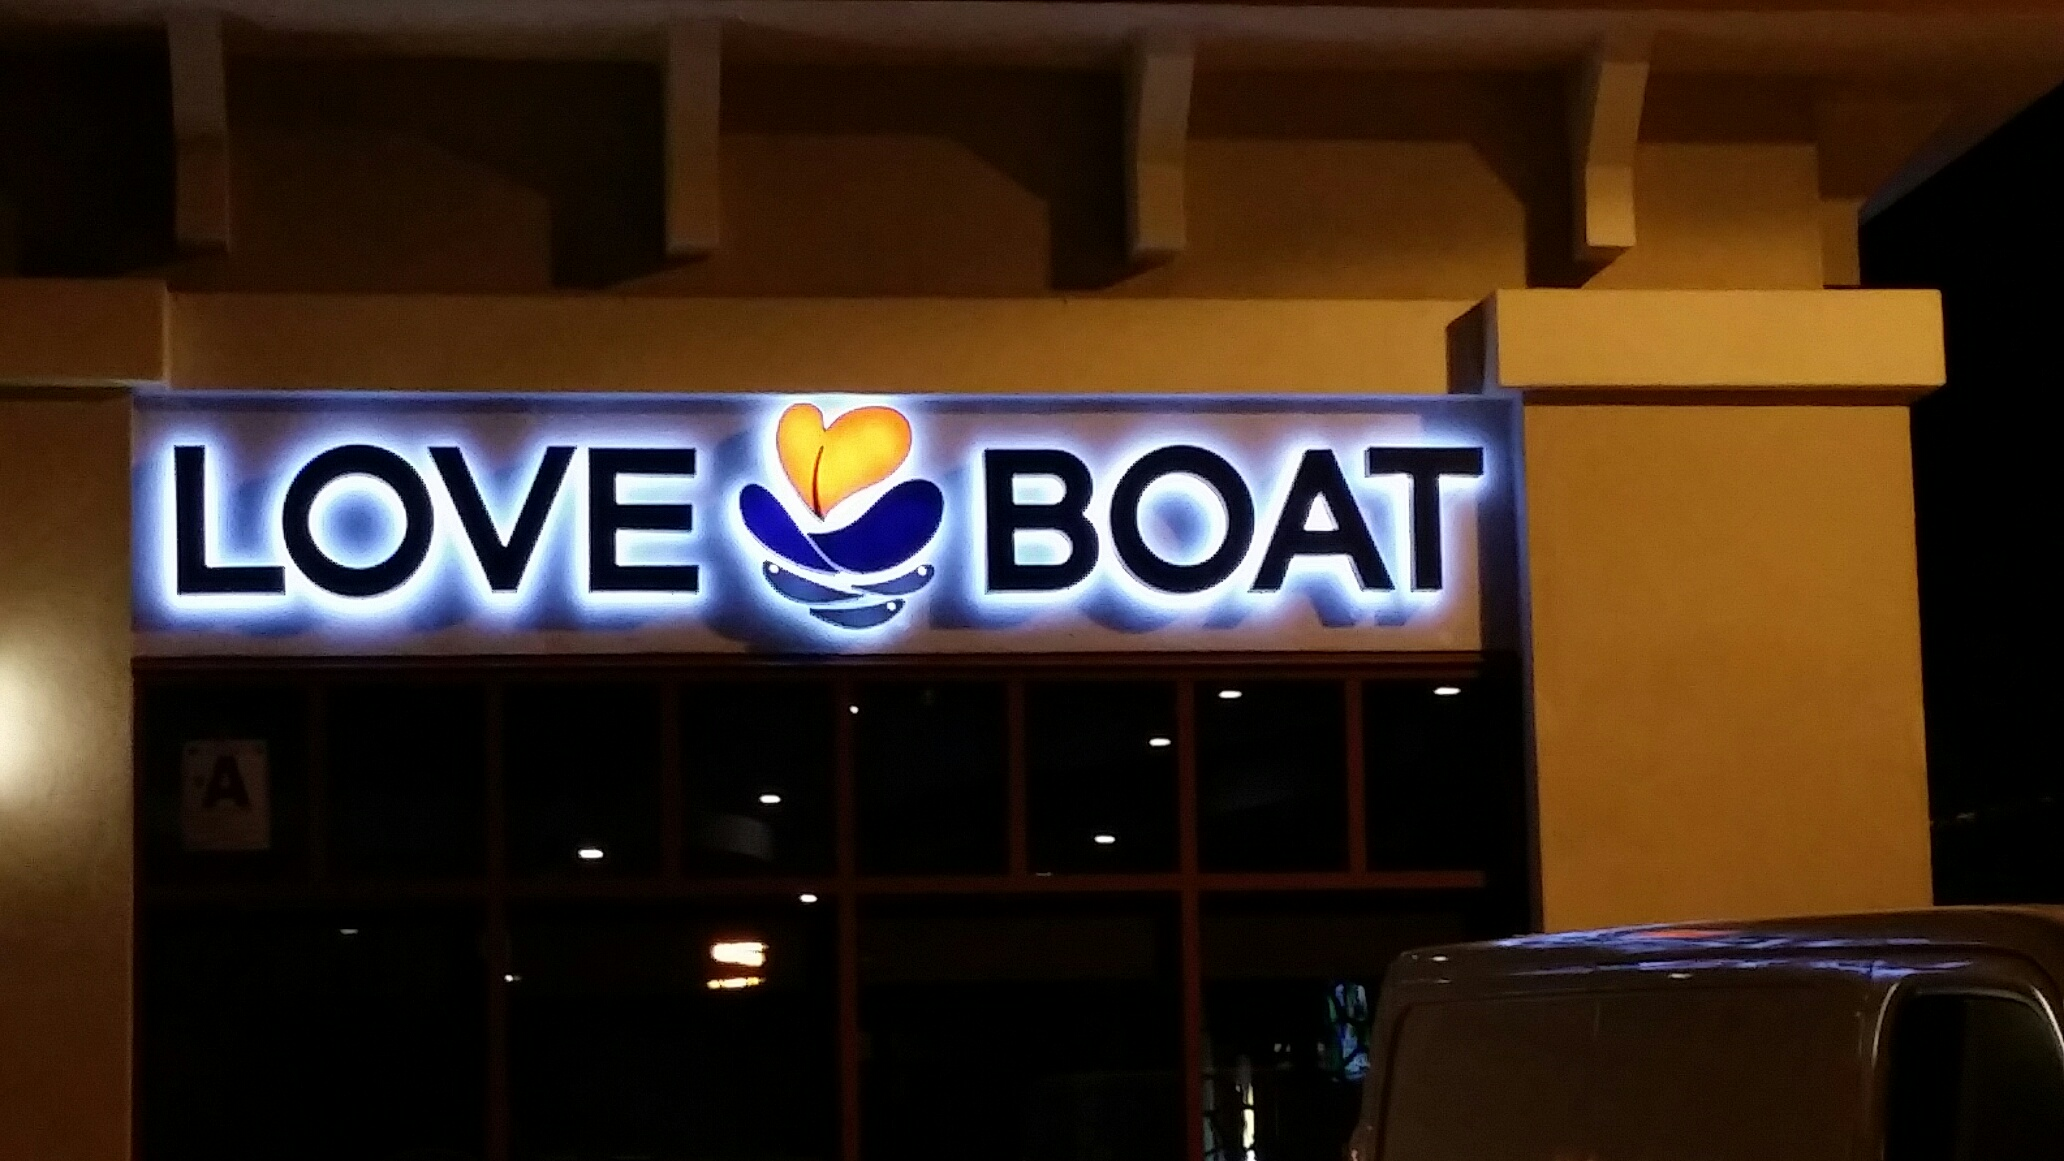 Electric Sign, Neon Sign, Love Boat